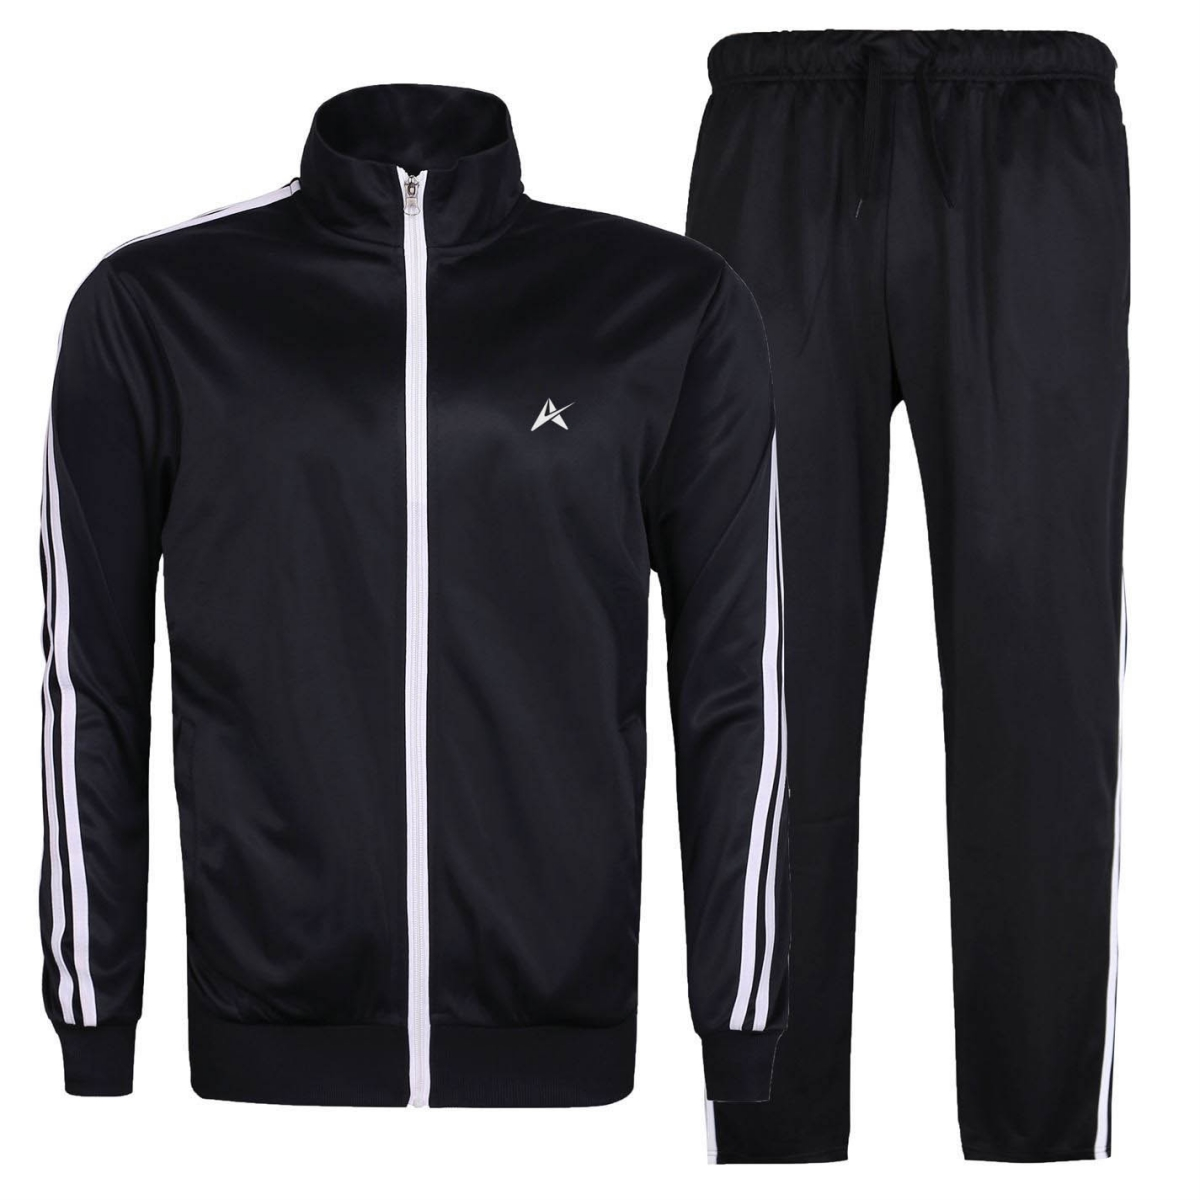 Men's Jogging Sports Suit Long Sleeve   A1-507